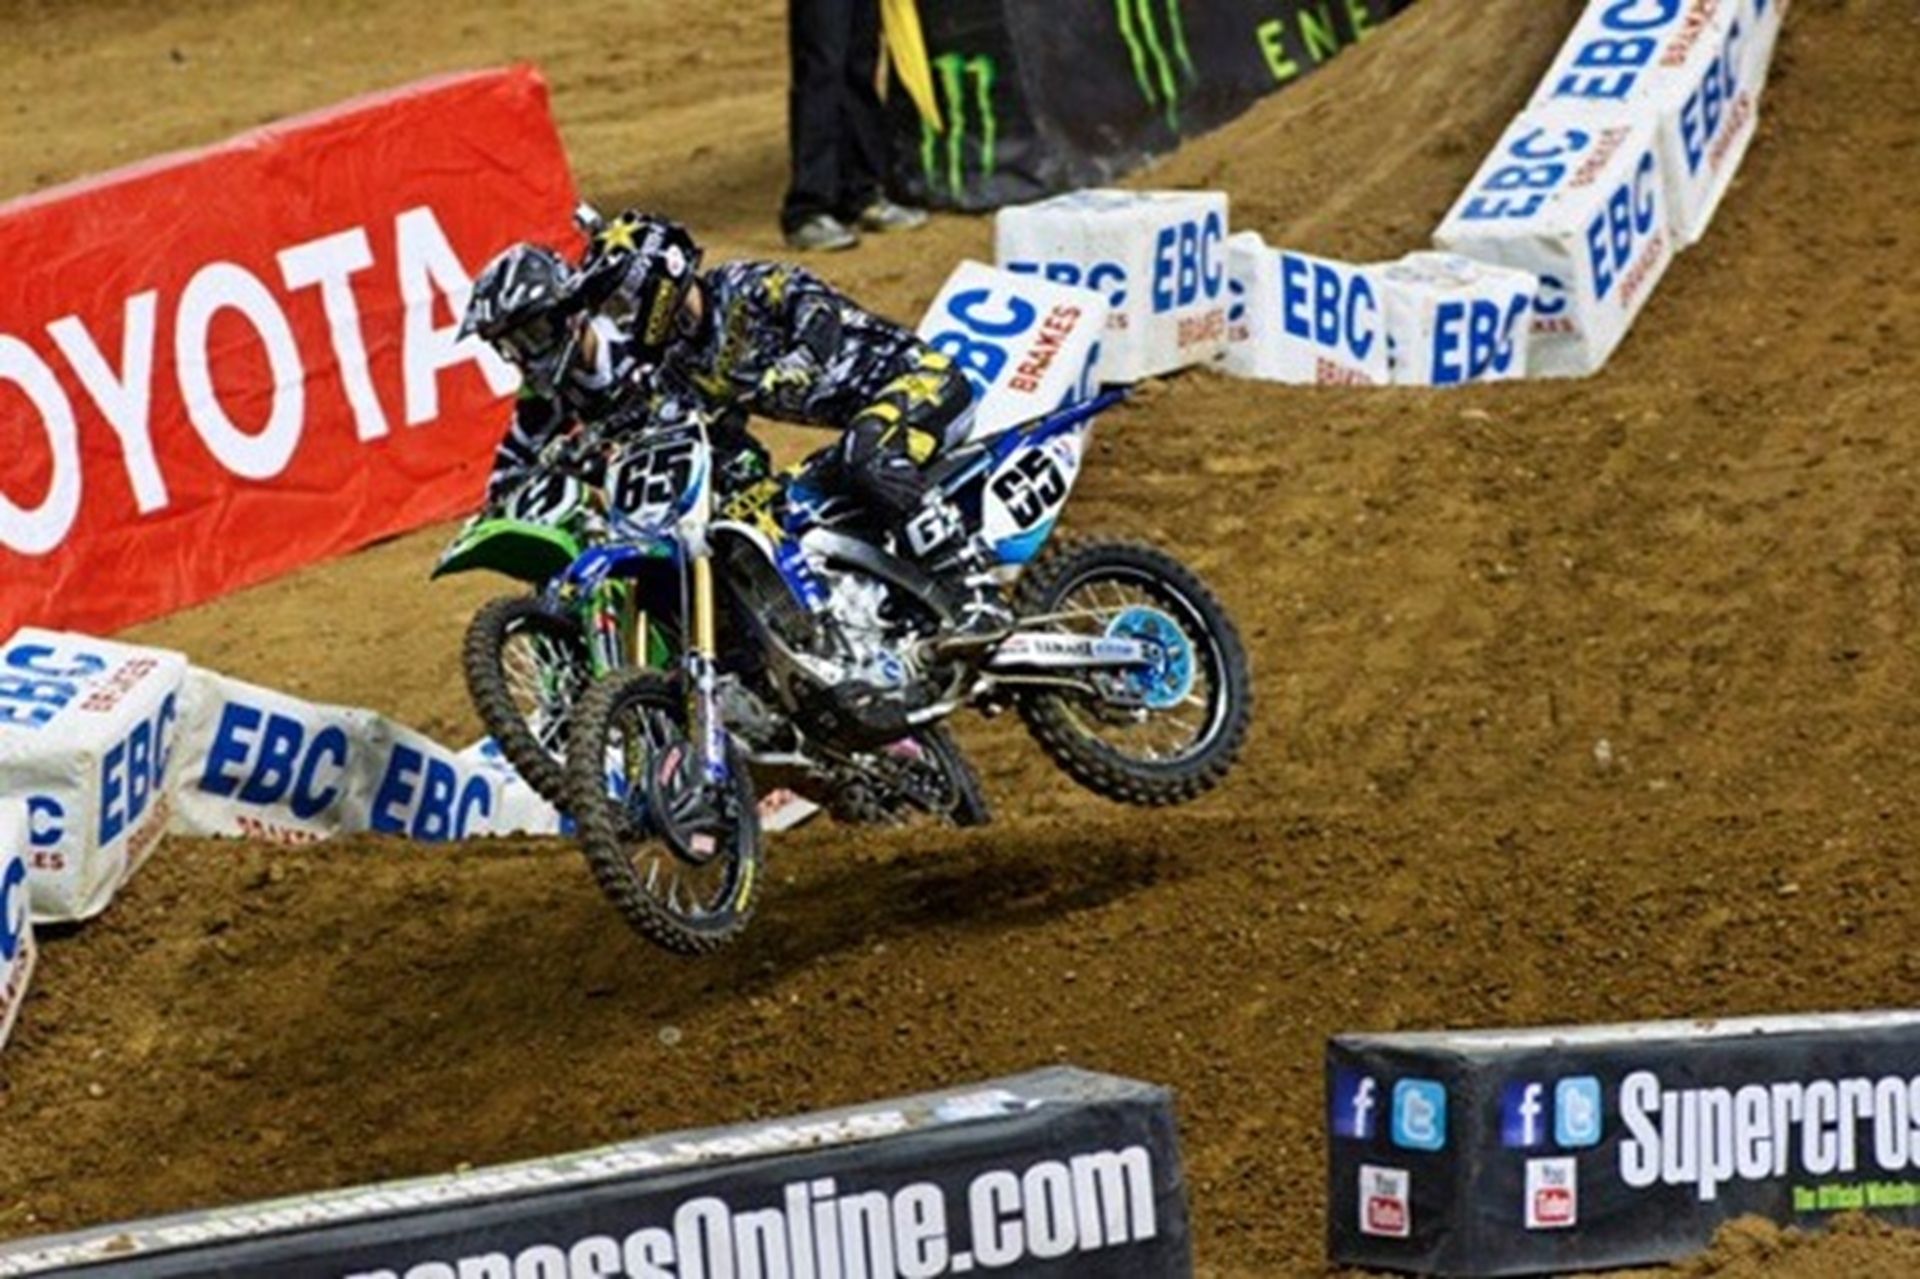 Ryan Morais Supercross